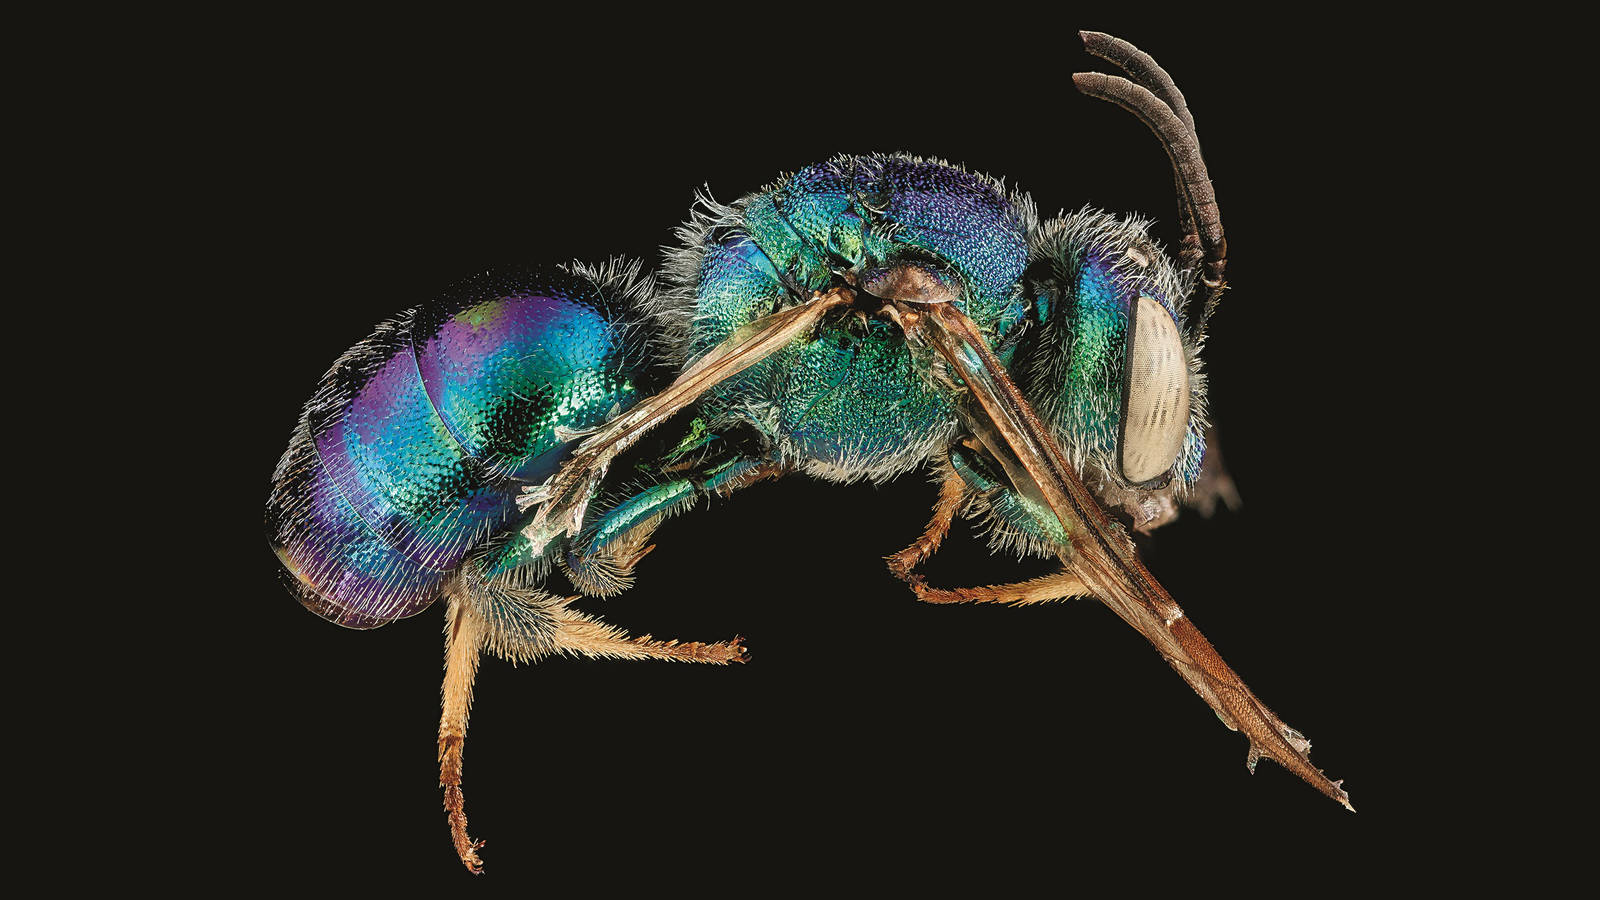 """<h3 style=""""text-align: center; padding: 50px;""""><span class=""""text-Intro-style""""><em>Augochloropsis anonyma</em> (bee), Biscayne National Park, Florida. © SAM DROEGE/USGS BEE INVENTORY AND MONITORING LAB</span></h3>"""